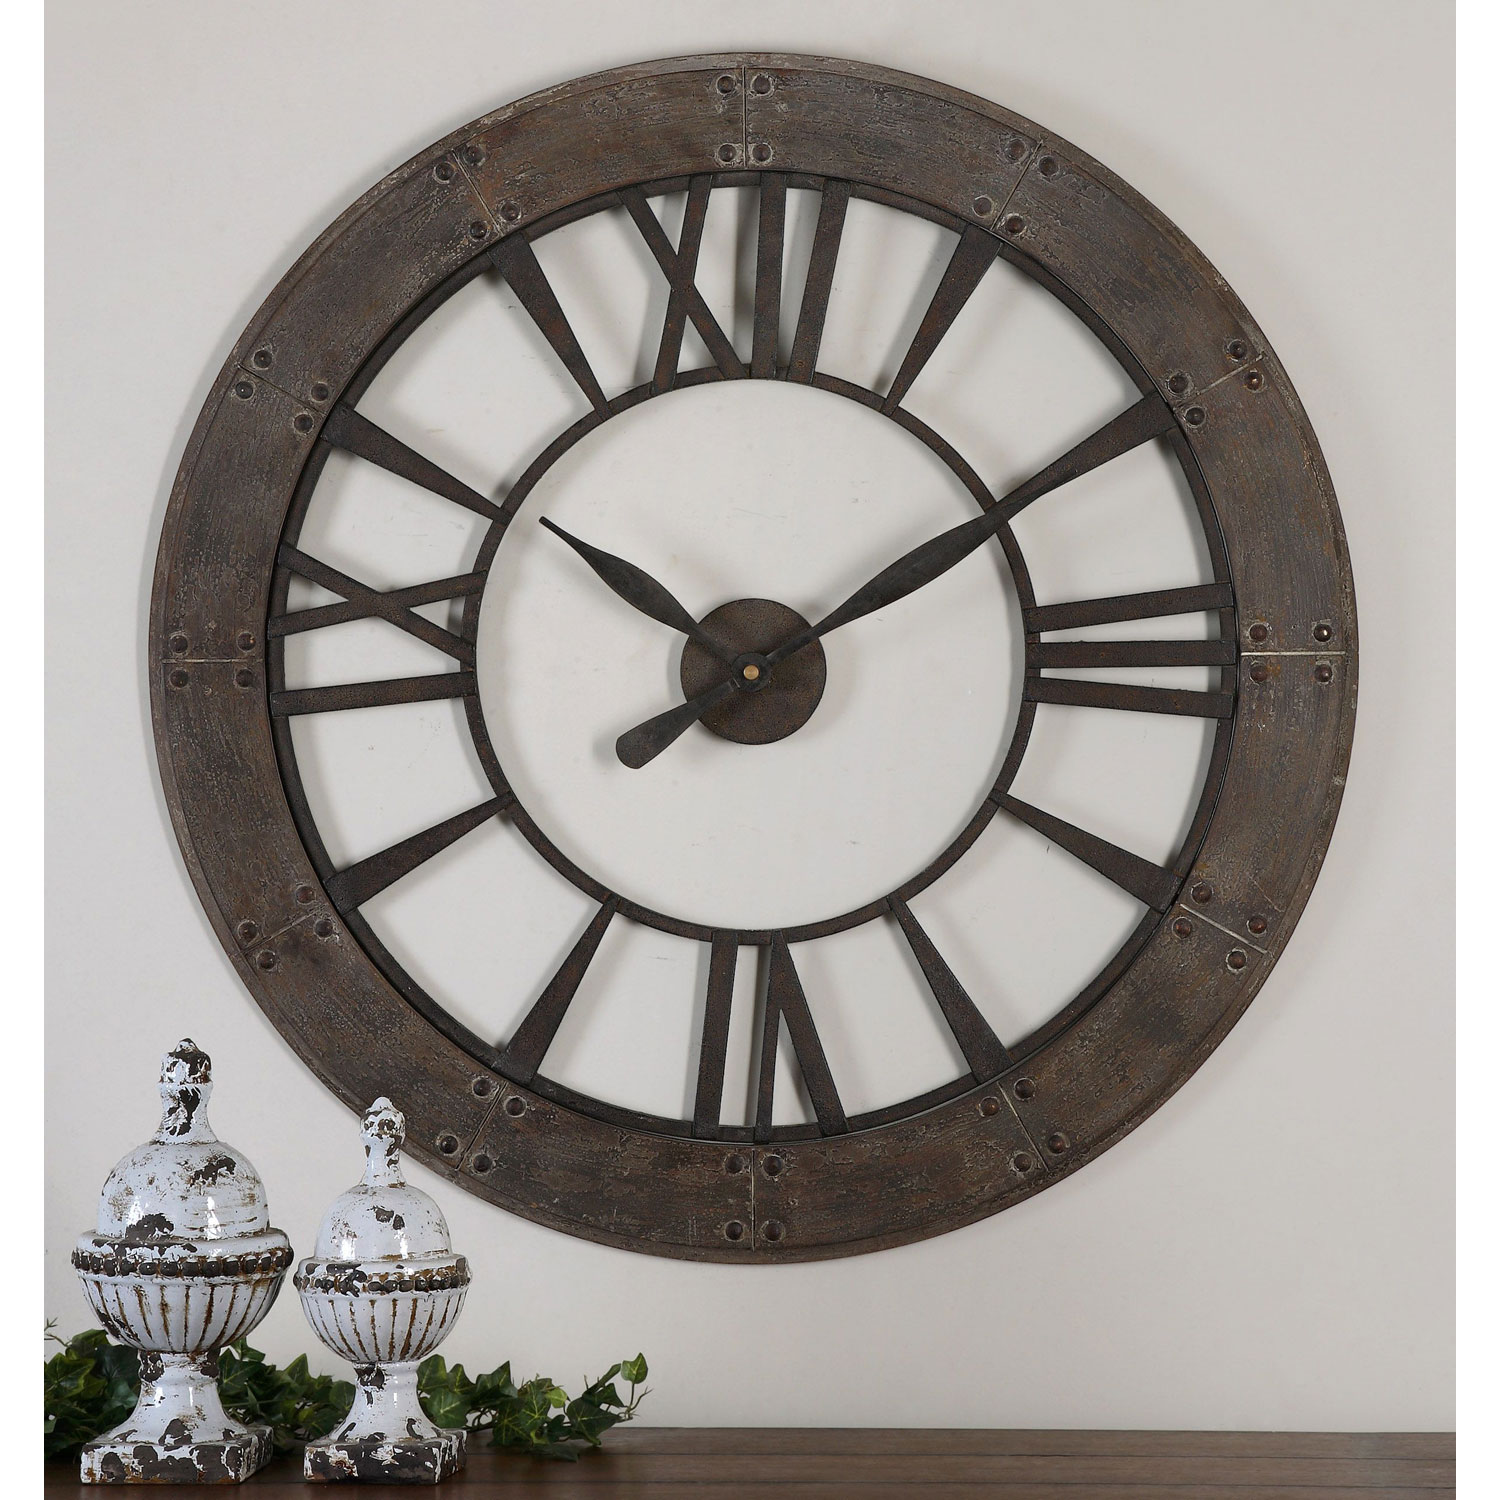 uttermost ronan dark rustic bronze wall clock bellacor asher blue accent table hover zoom target gold drum legs decor wicker patio coffee crystal lamps for living room wireless